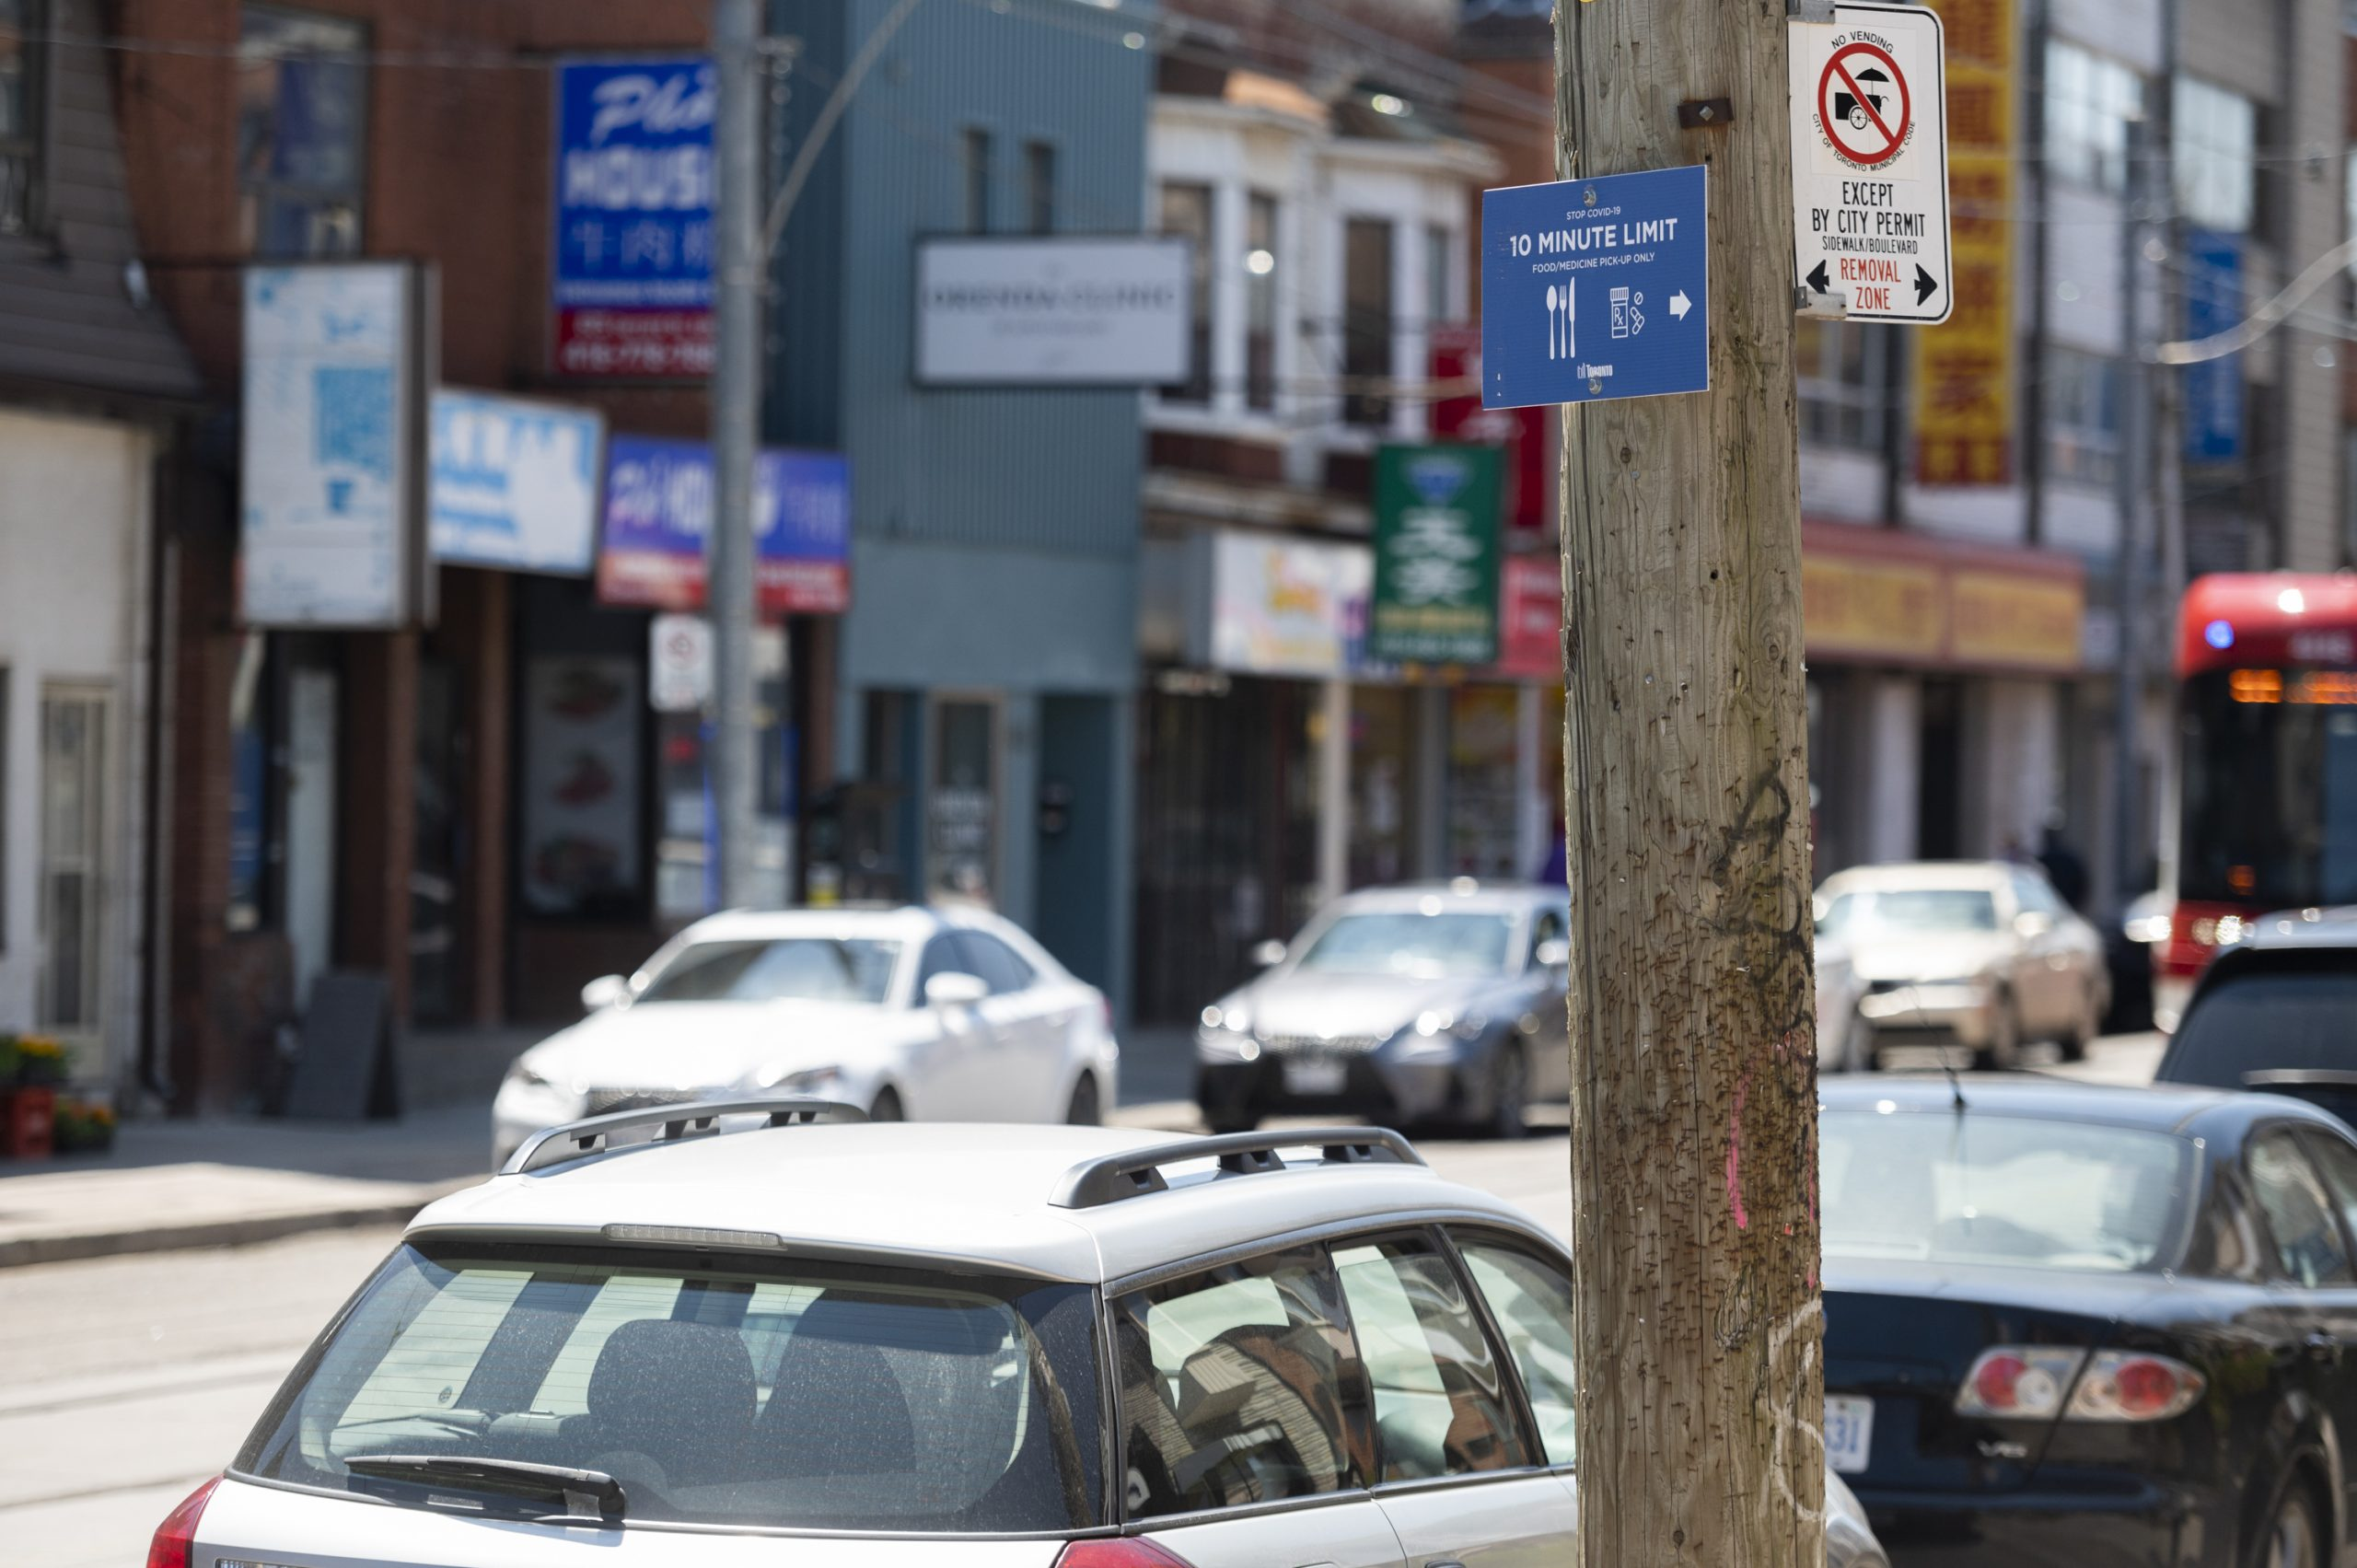 Image of temporary parking pick up zone with blue signage on a pole reading 10 minute limit